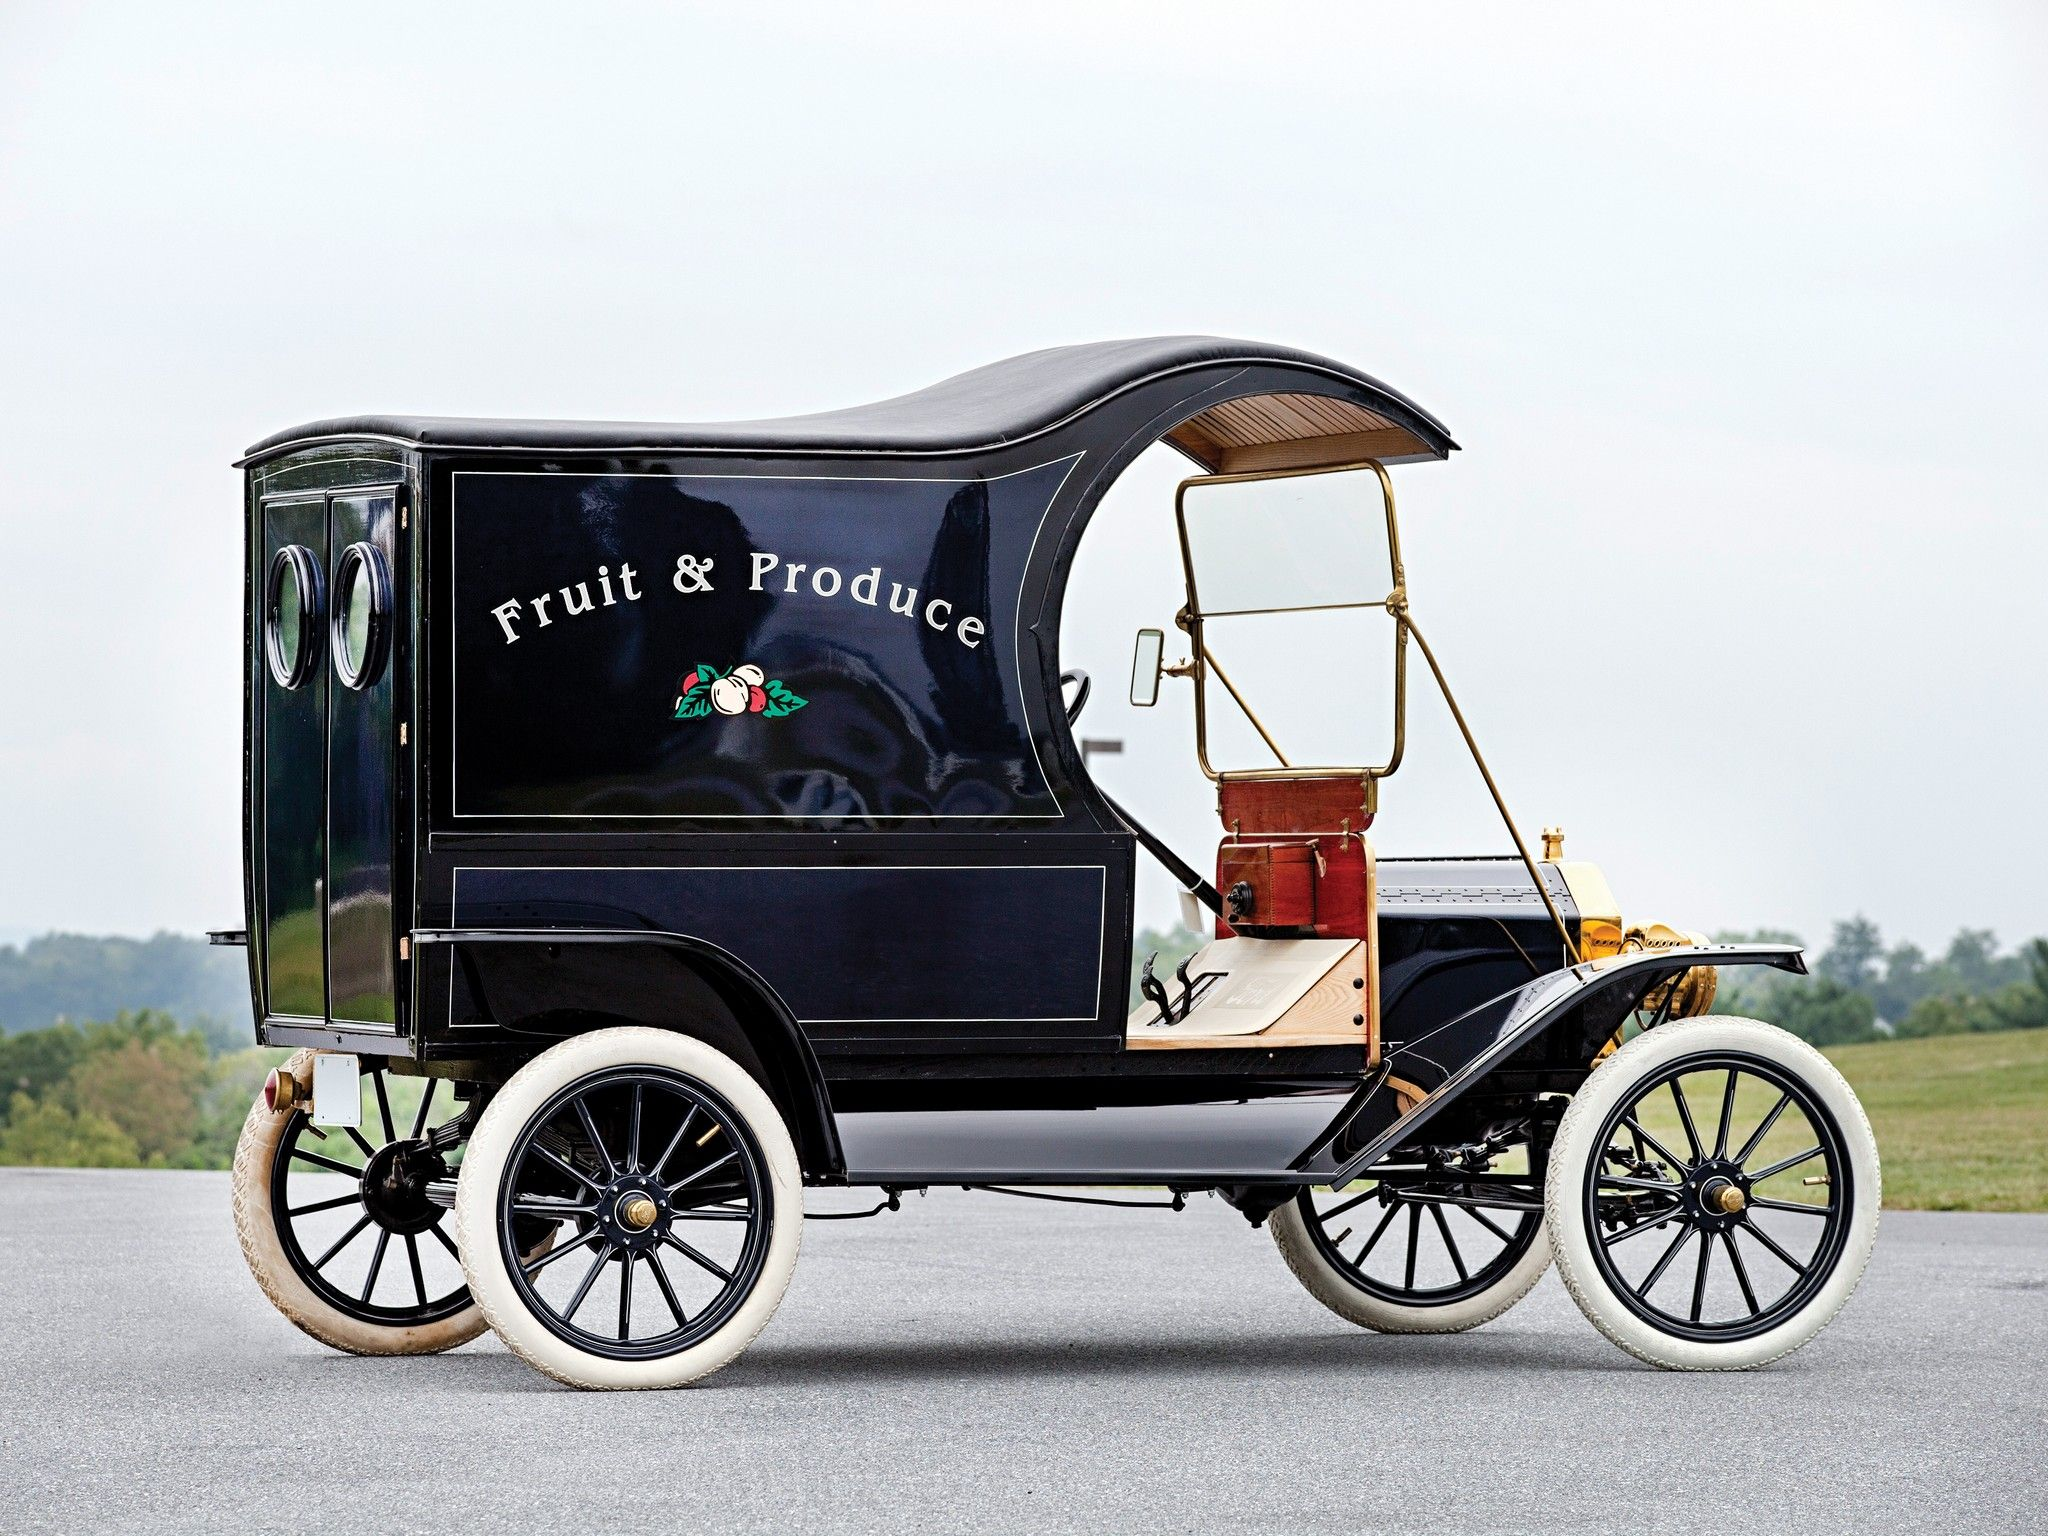 1912 Ford Model T Delivery The Material Which I Can Produce Is Suitable For Different Flat Objects E G Classic Cars Trucks Vintage Trucks Ford Classic Cars